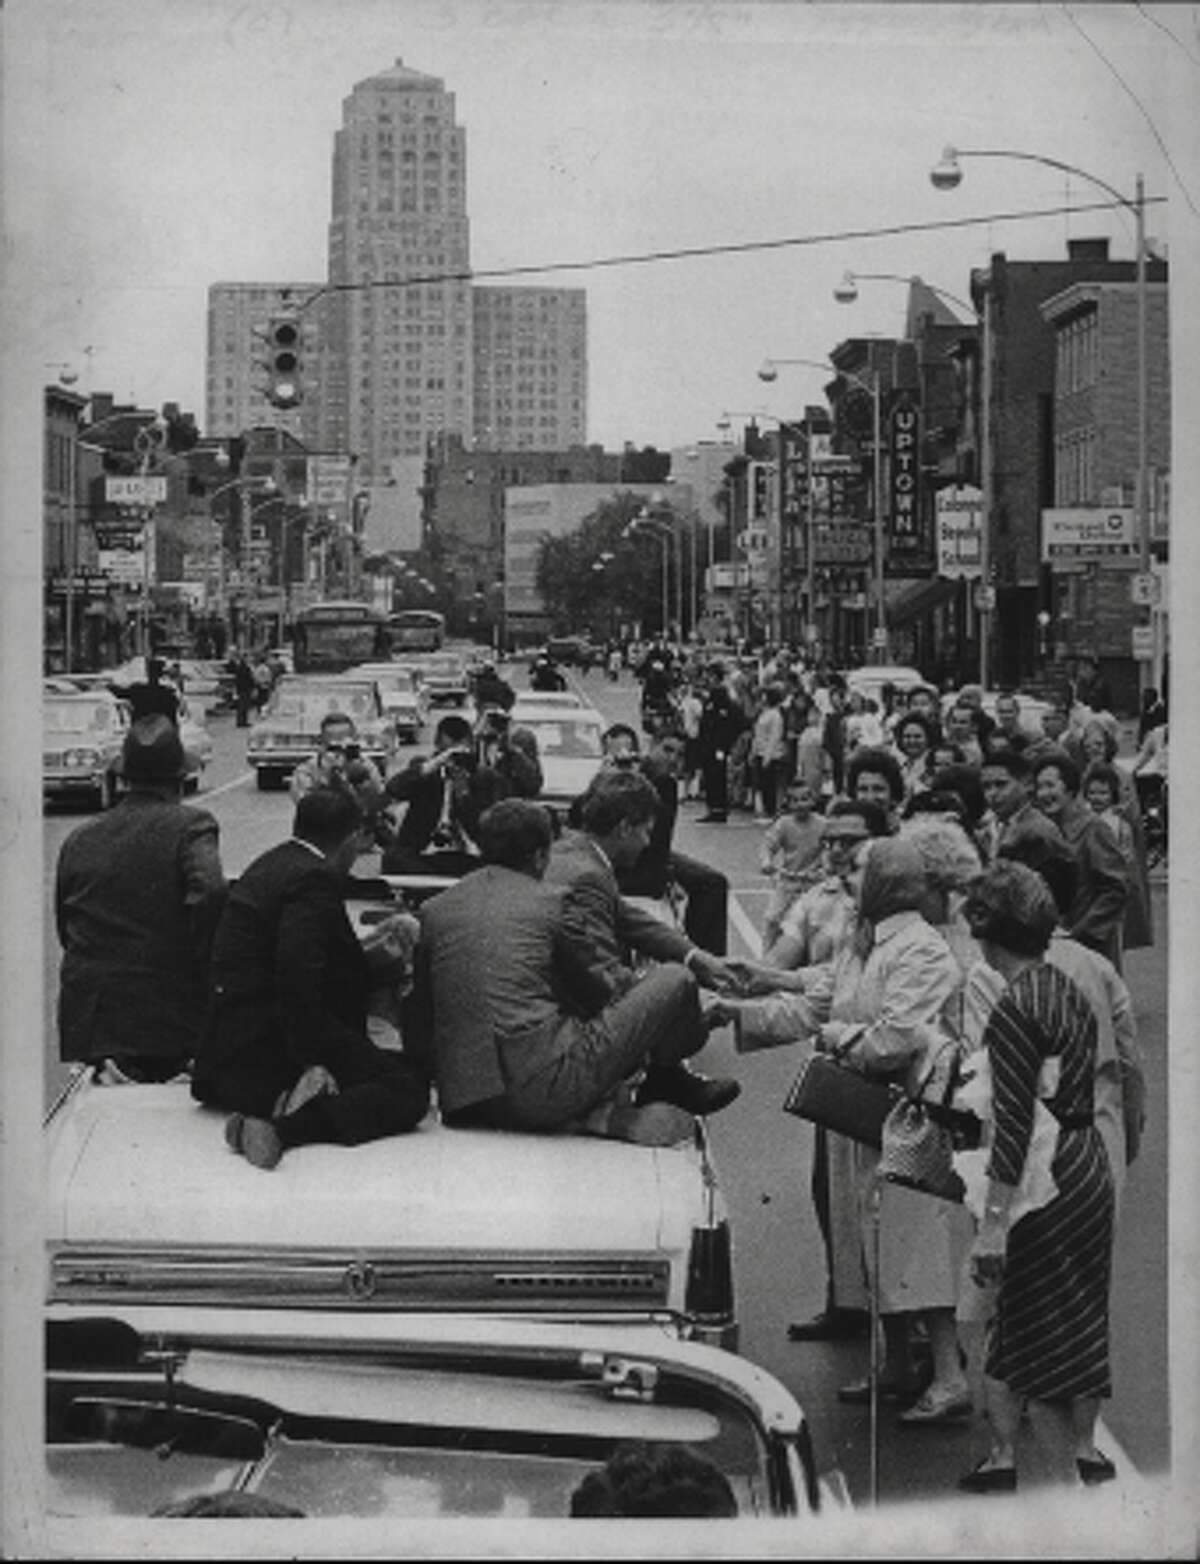 Visit to Albany, Senator Robert F. Kennedy. October 19, 1964 (Times Union Archive)